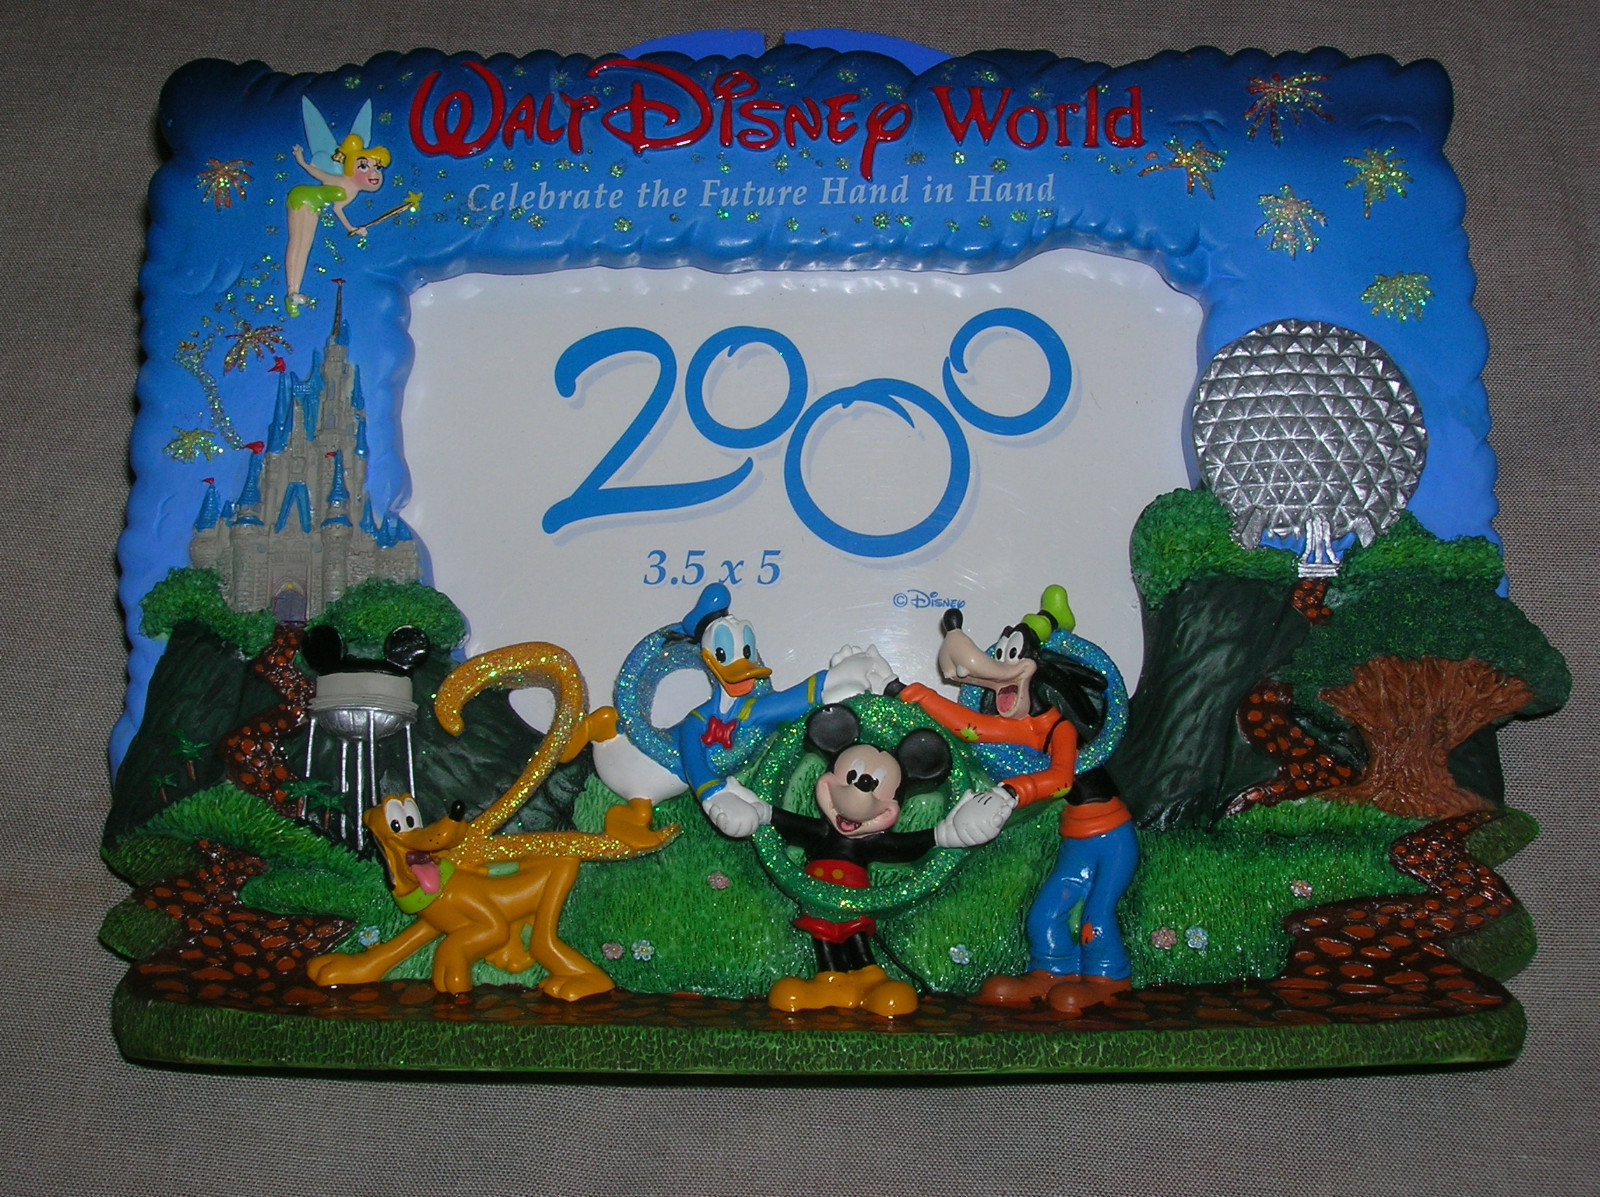 New Walt Disney World 2000 Picture Frame Serendipitys Collectible